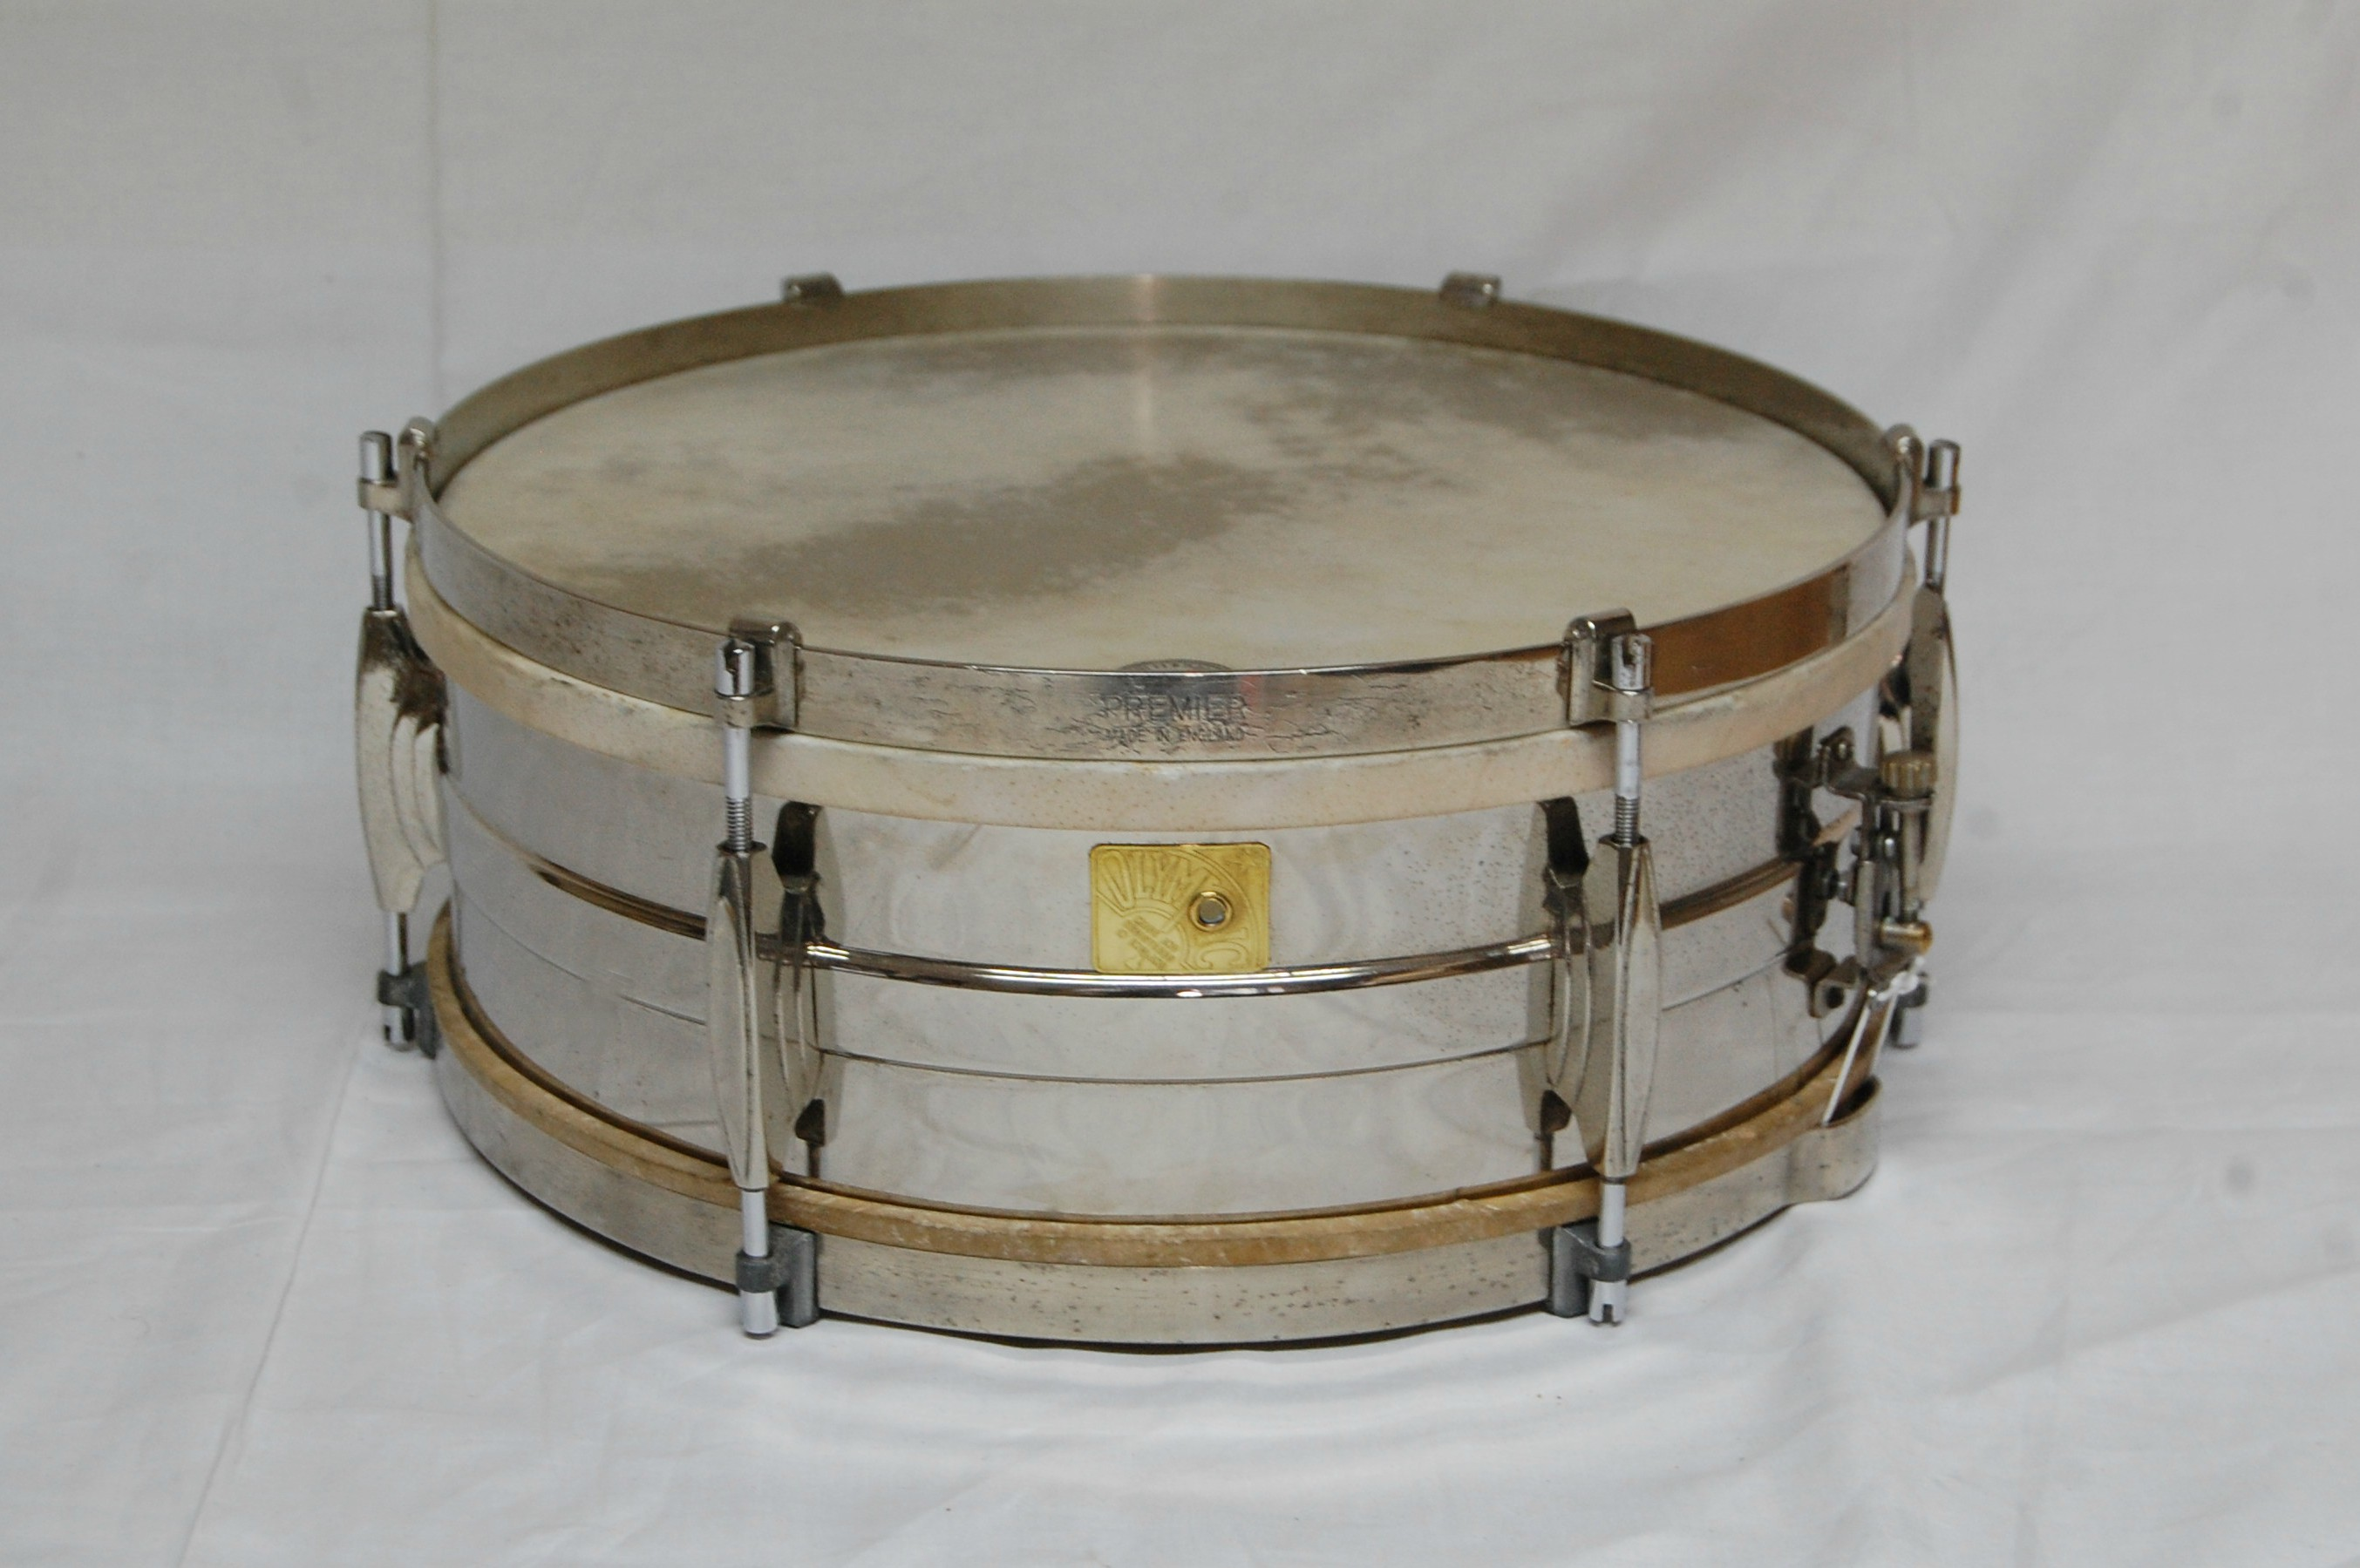 Dating vintage premier drums